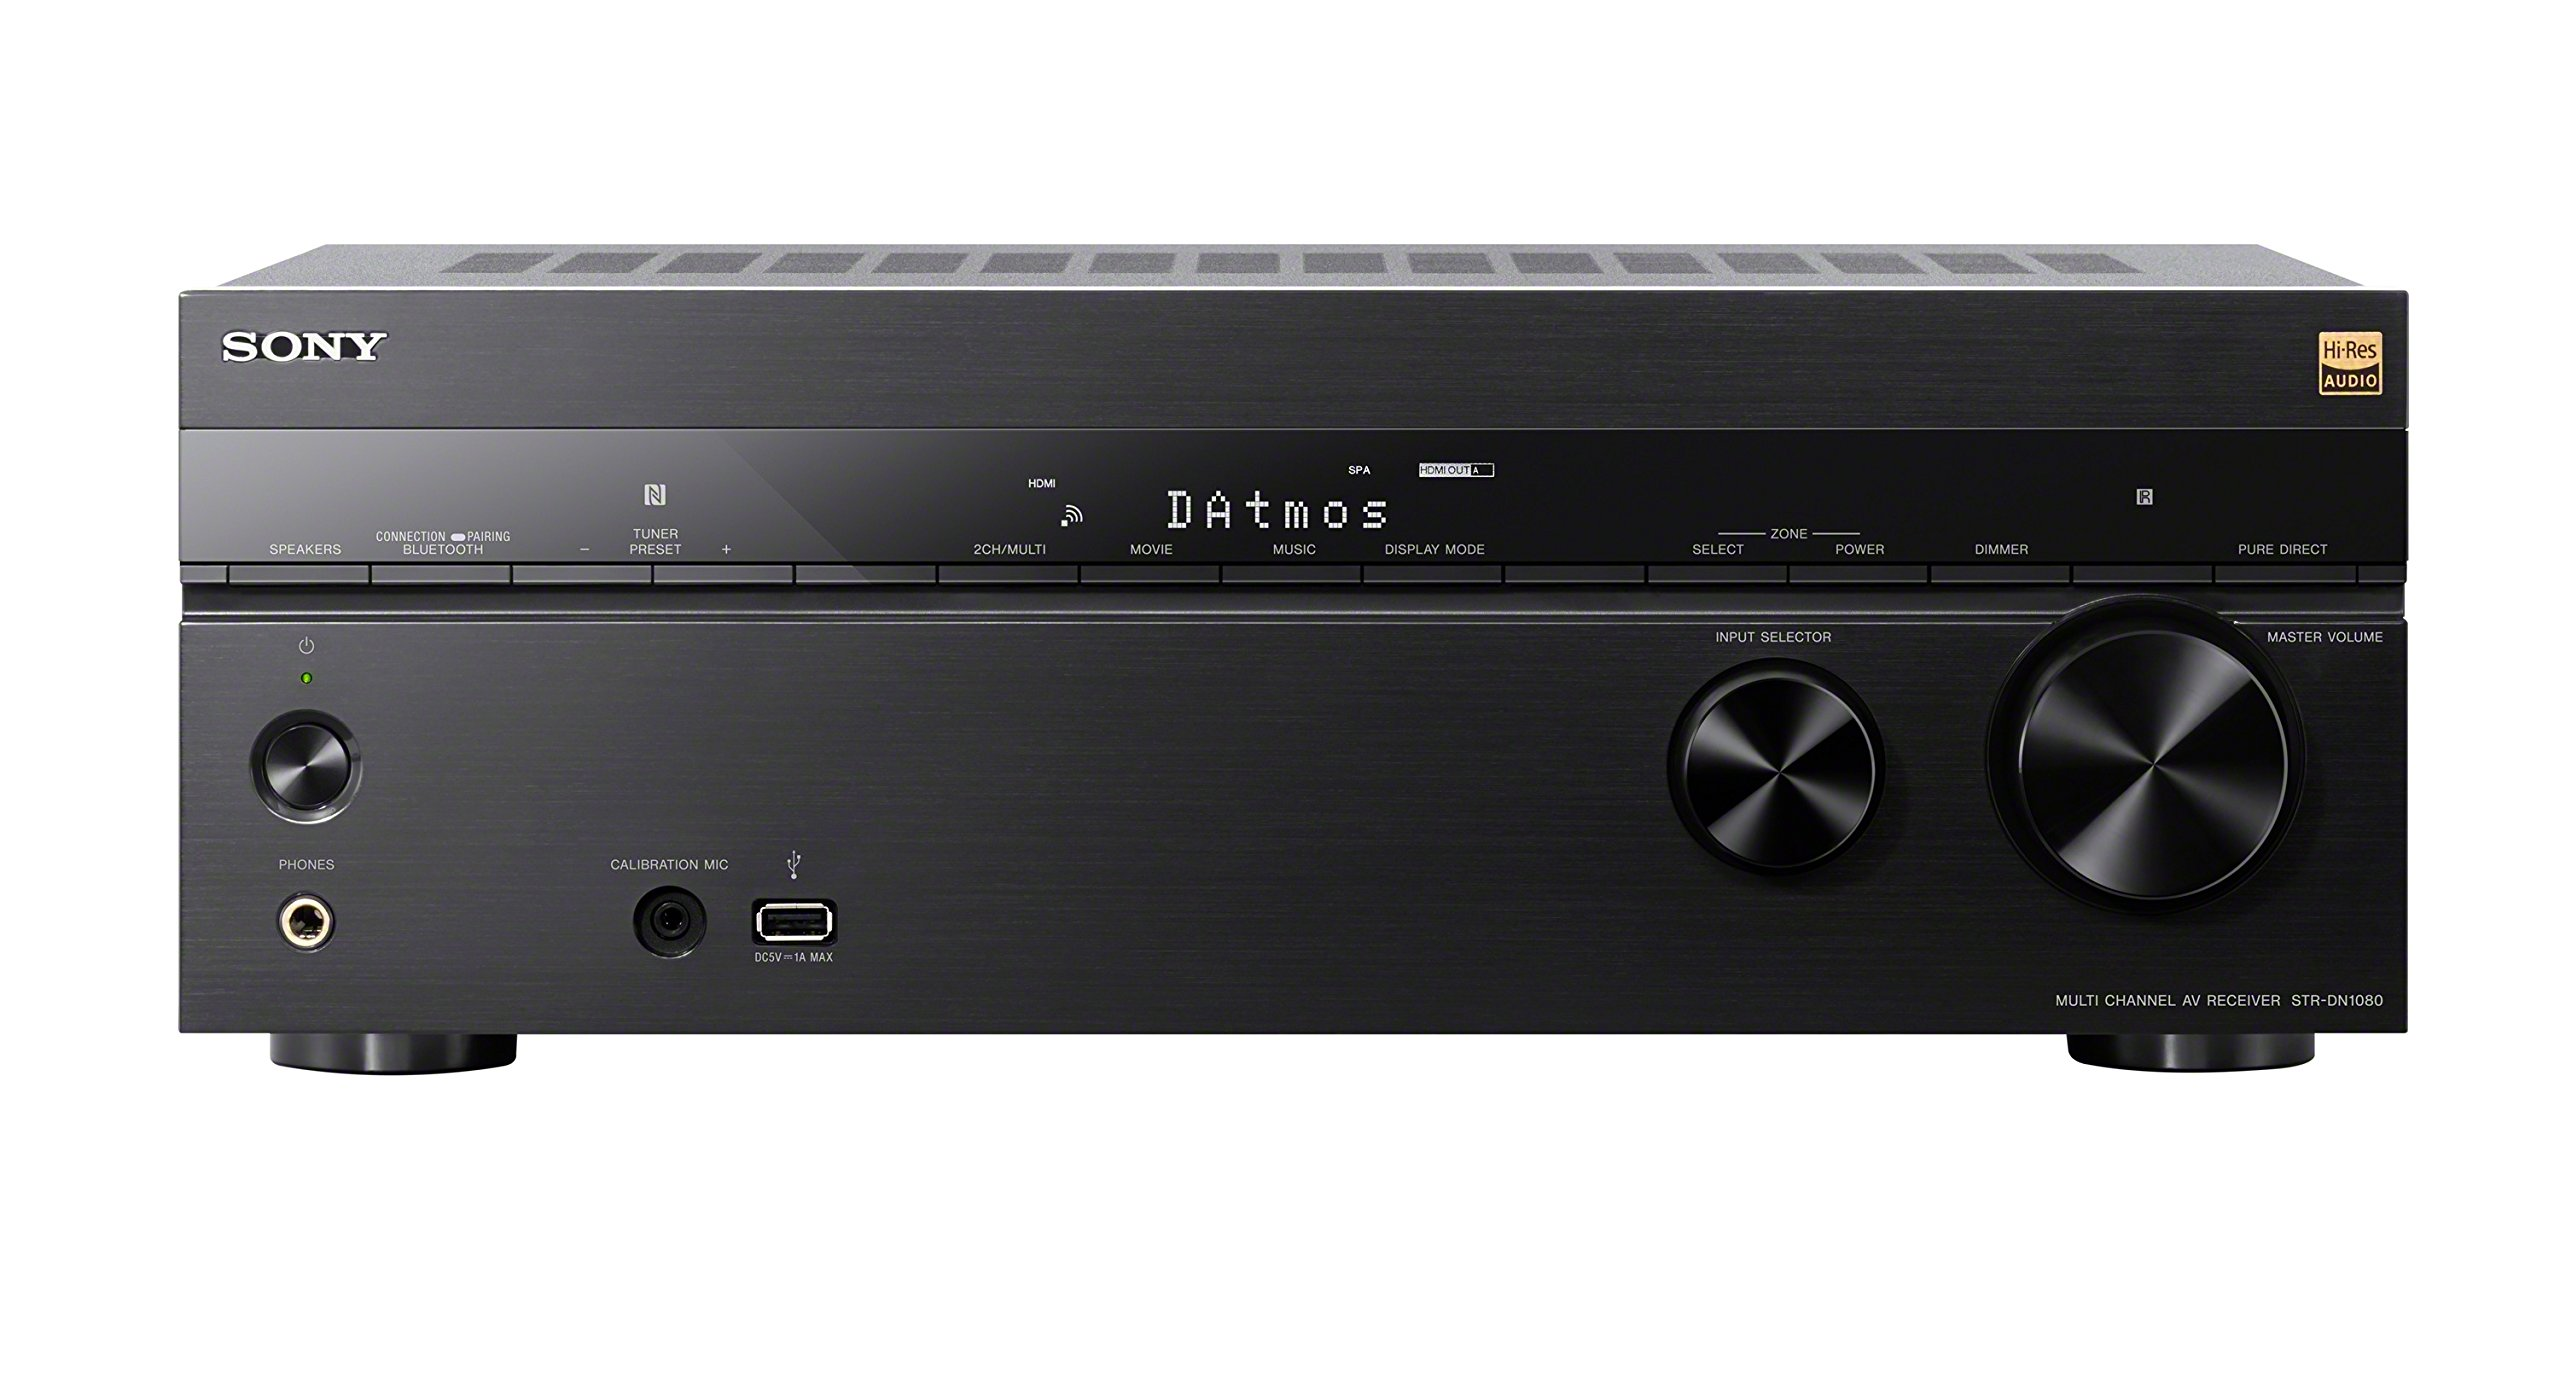 Sony STRDN1080 7.2 Channel Dolby Atmos Home Theater AV Receiver by Sony